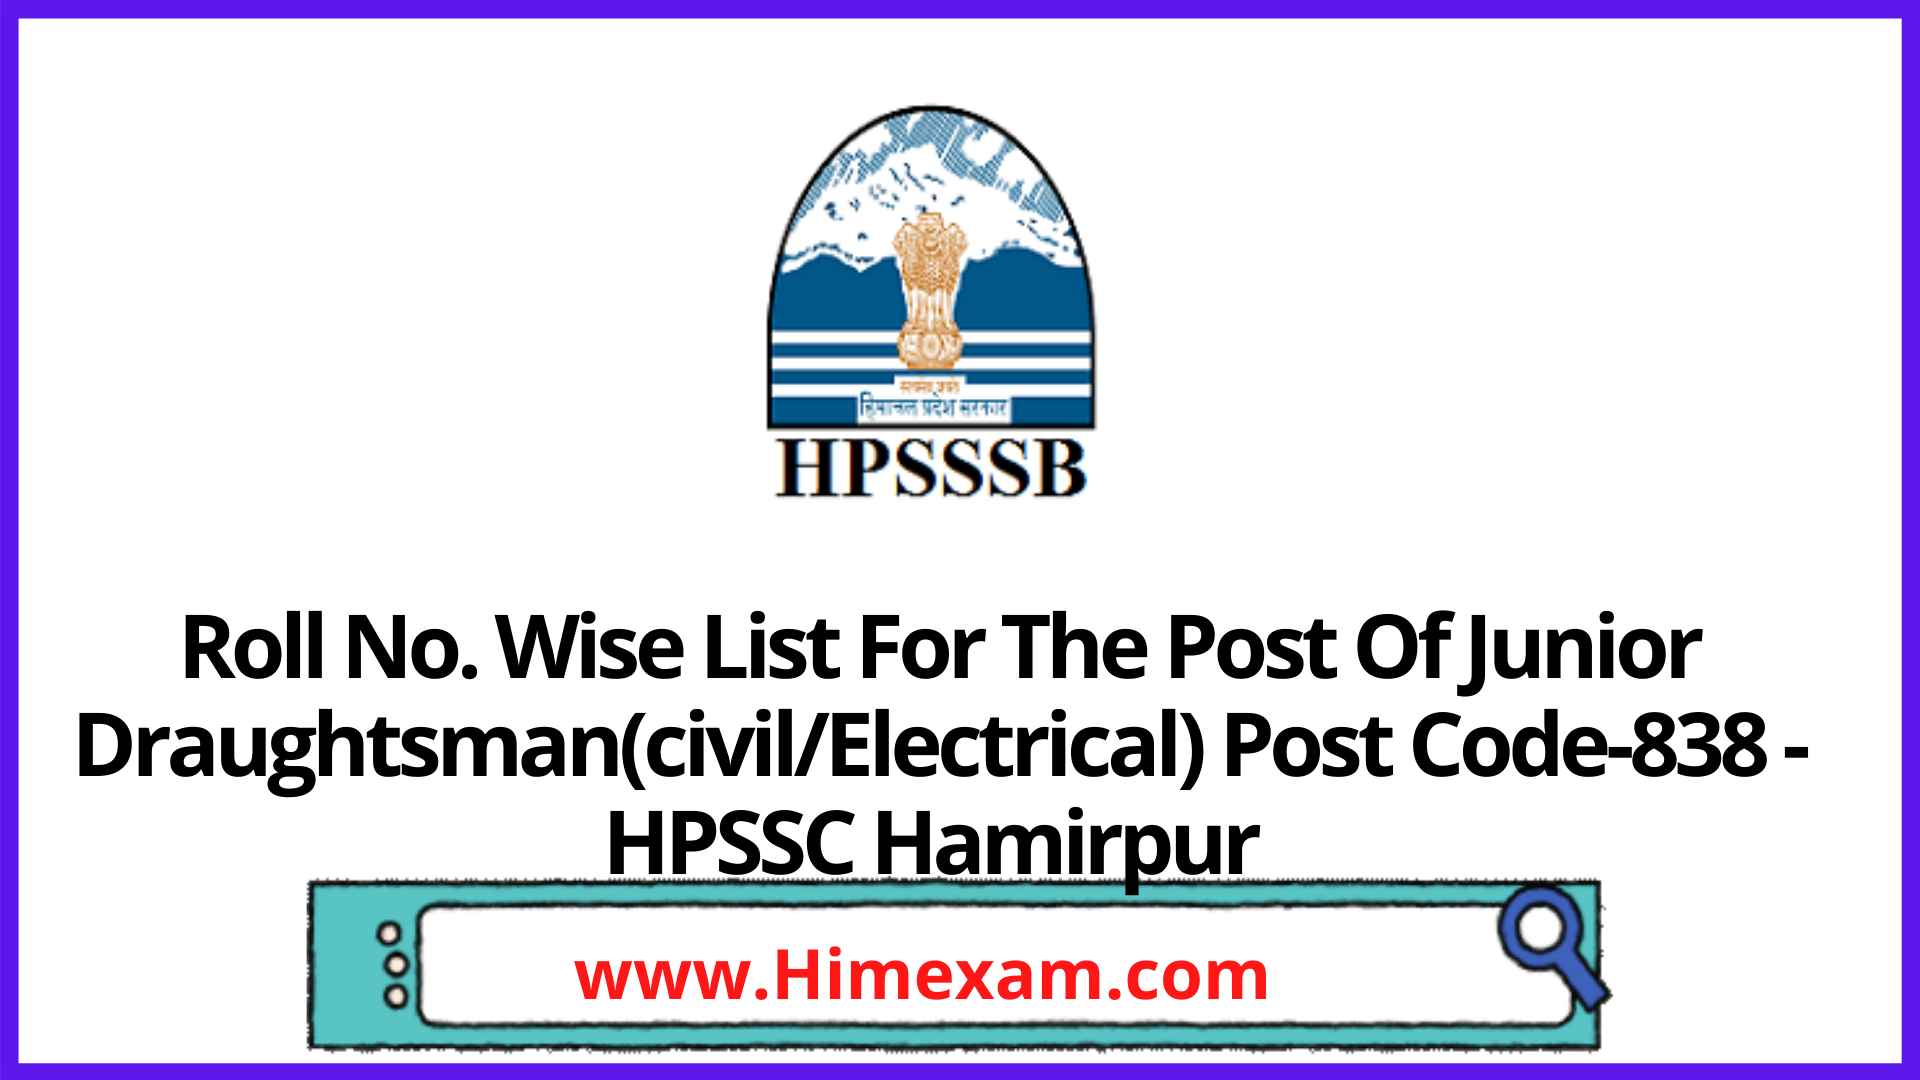 Roll No. Wise List For The Post Of Junior Draughtsman(civil/Electrical) Post Code-838 -HPSSC Hamirpur